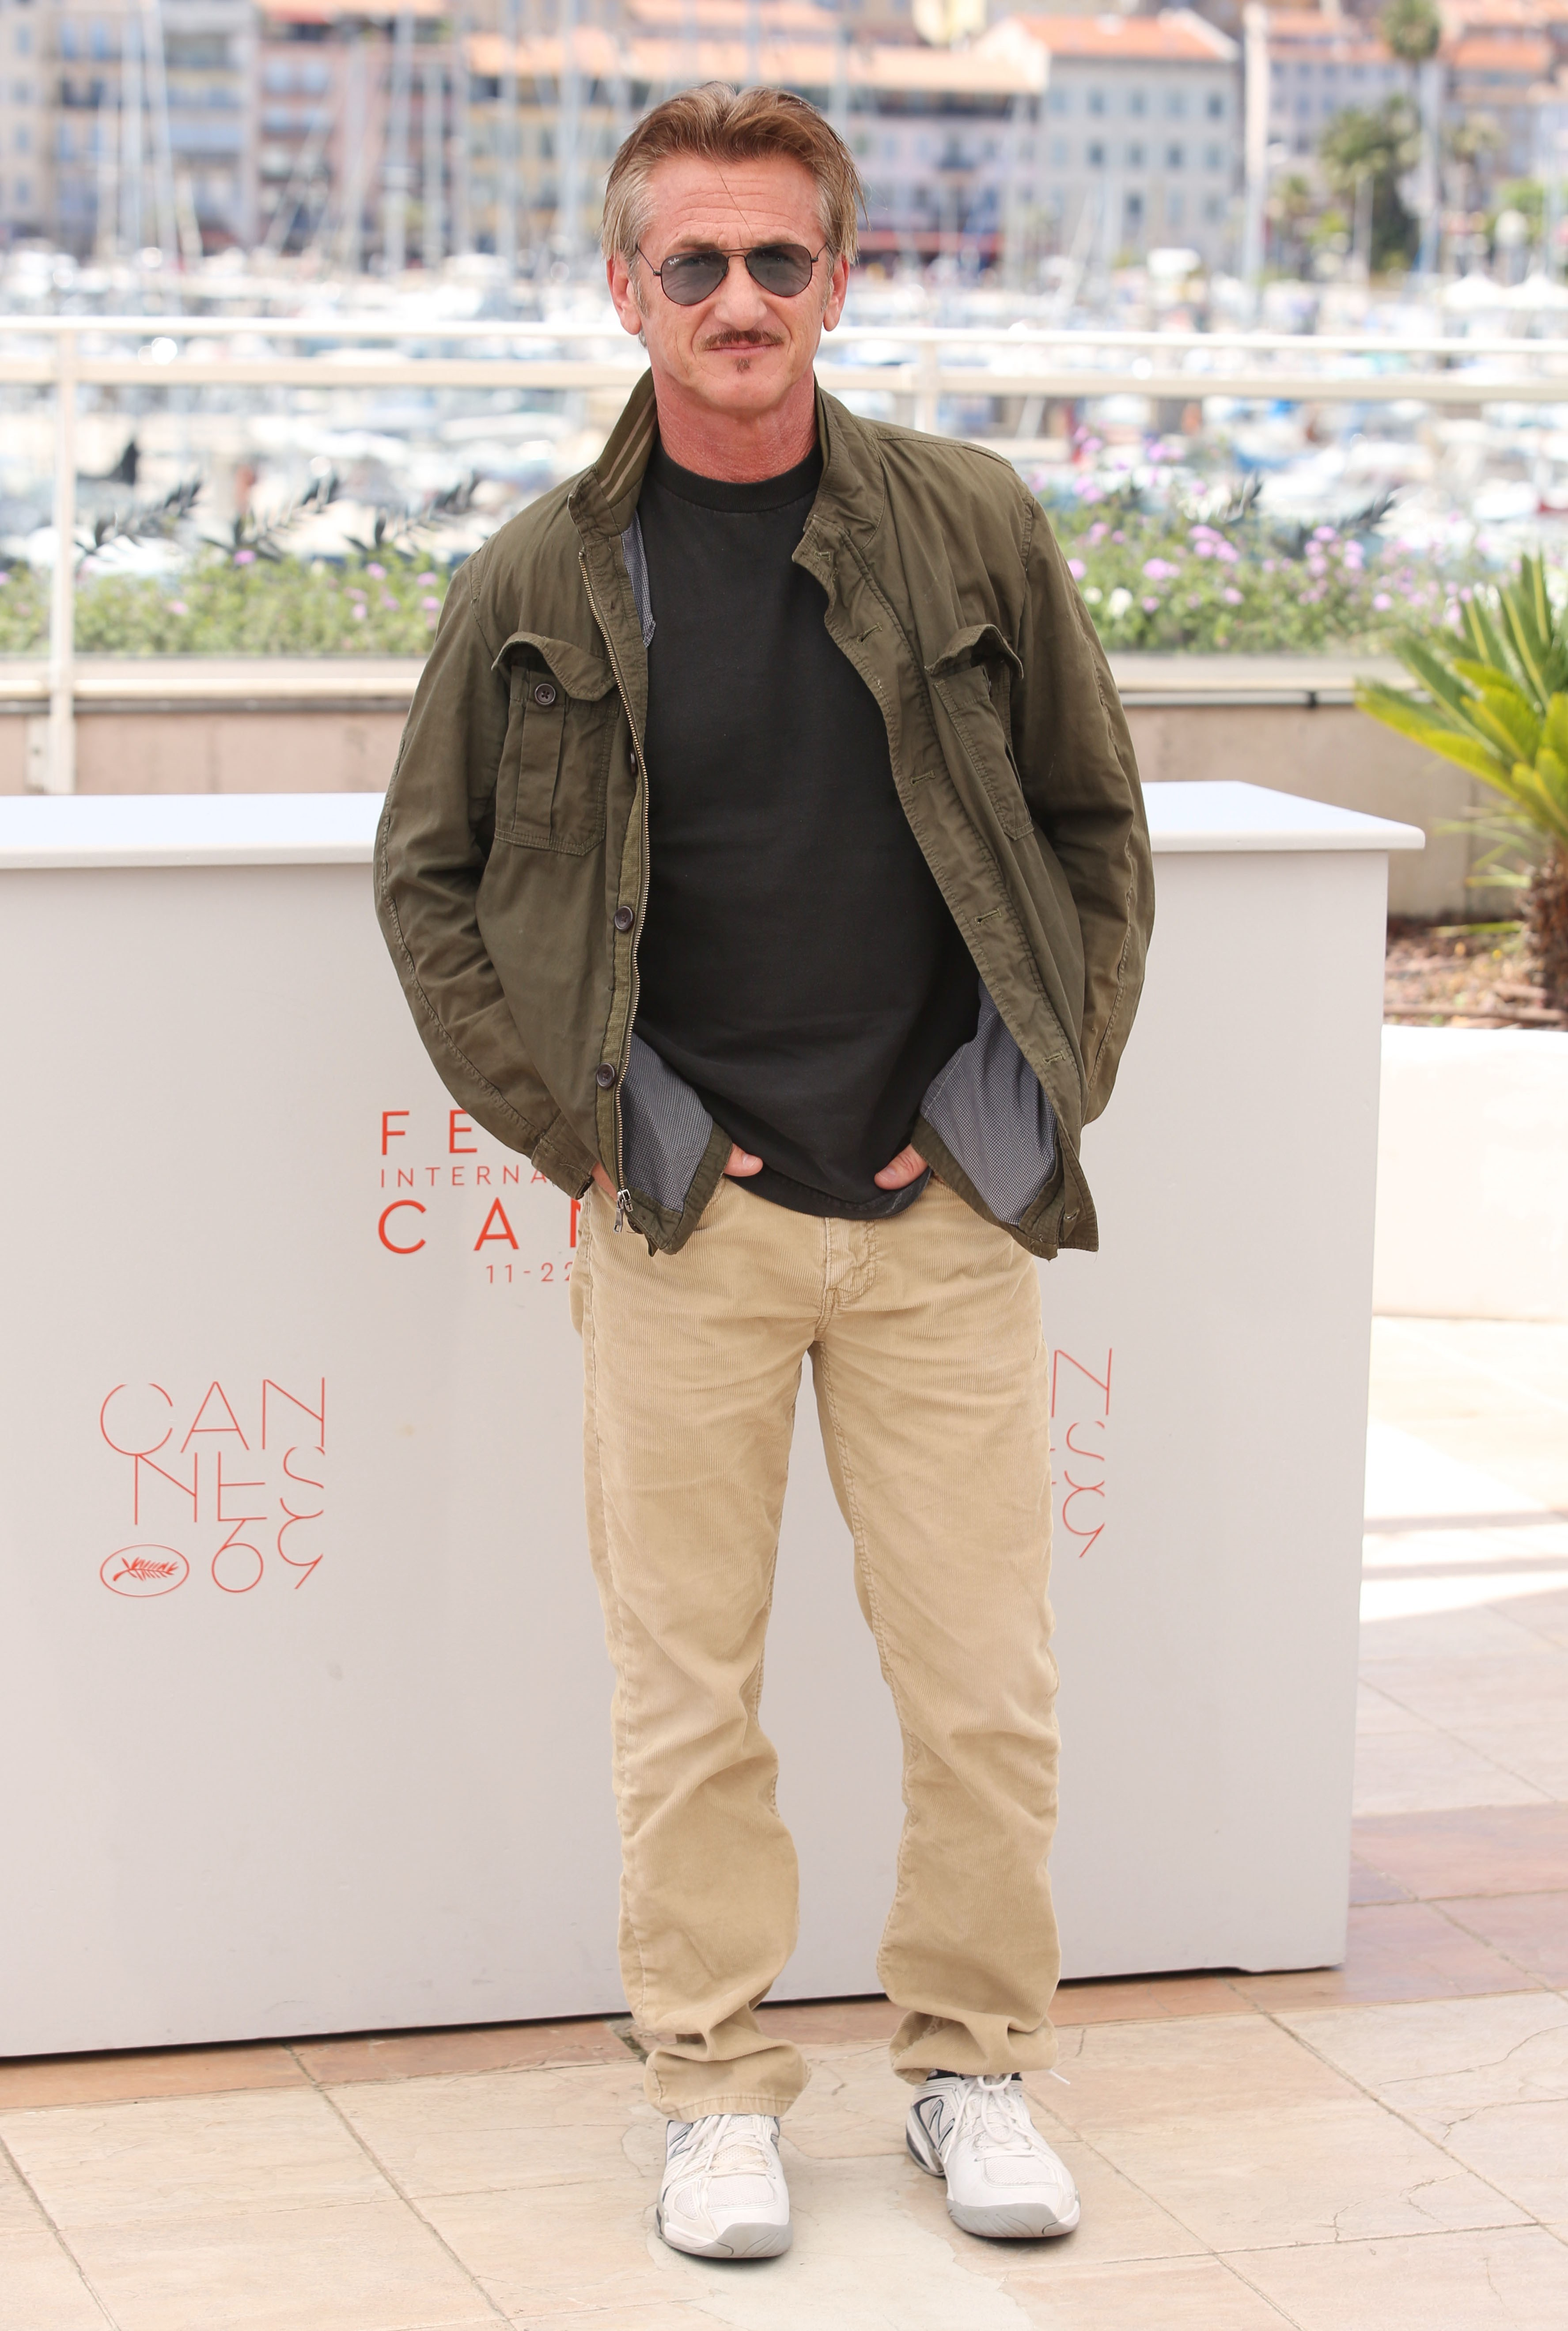 Sean Penn was dating someone else when Leila George pics surfaced